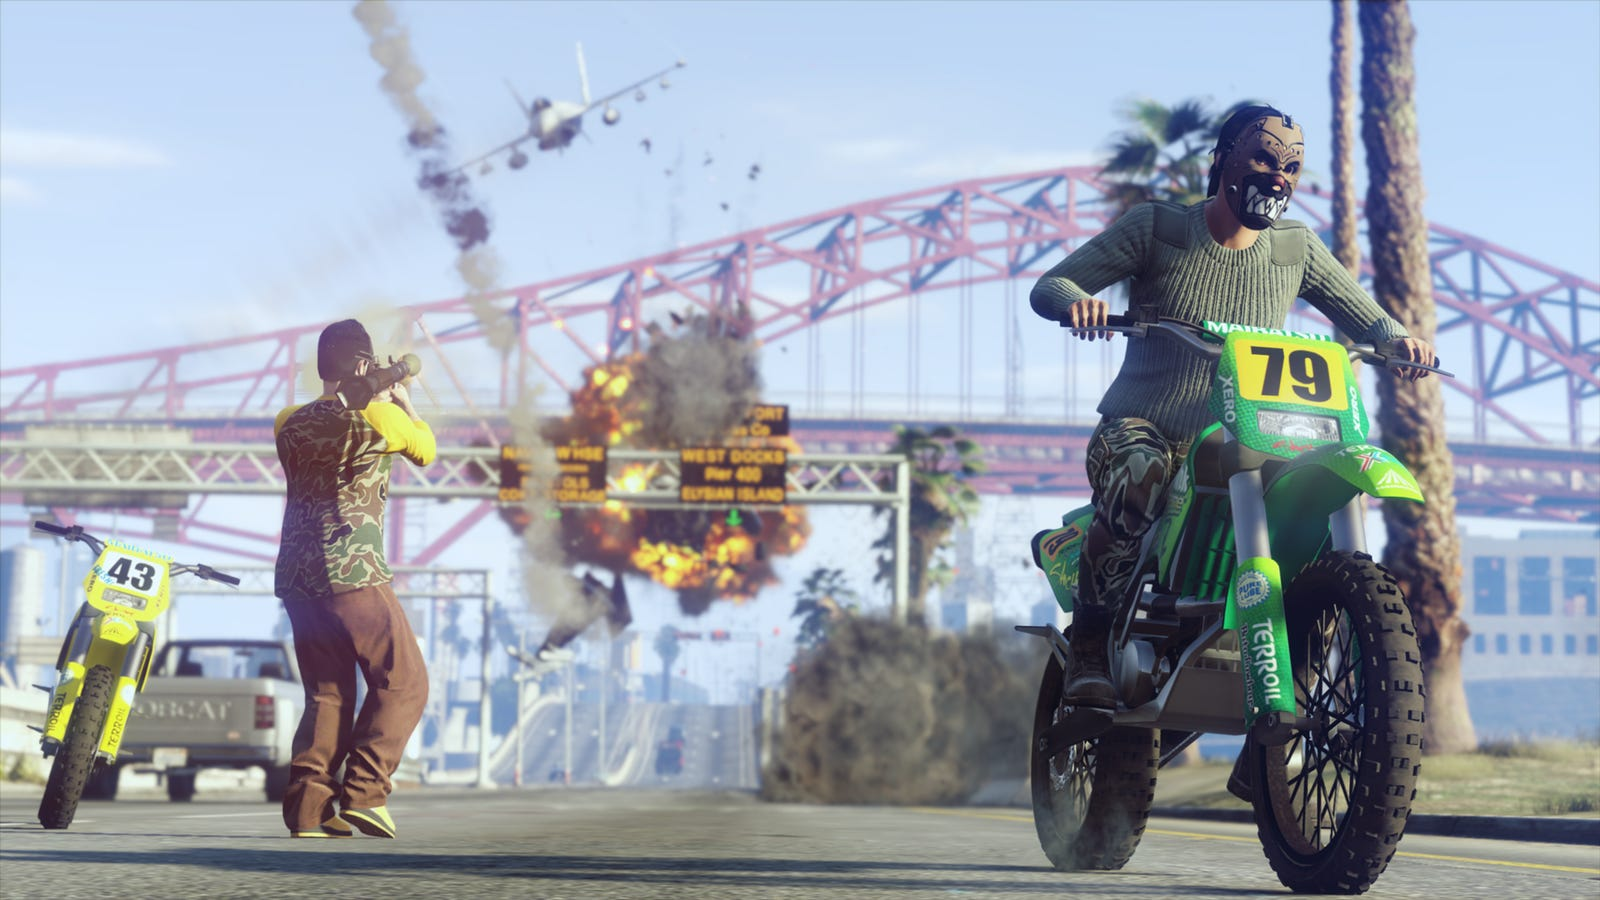 Earn free money and gold on GTA Online and Red Dead Online